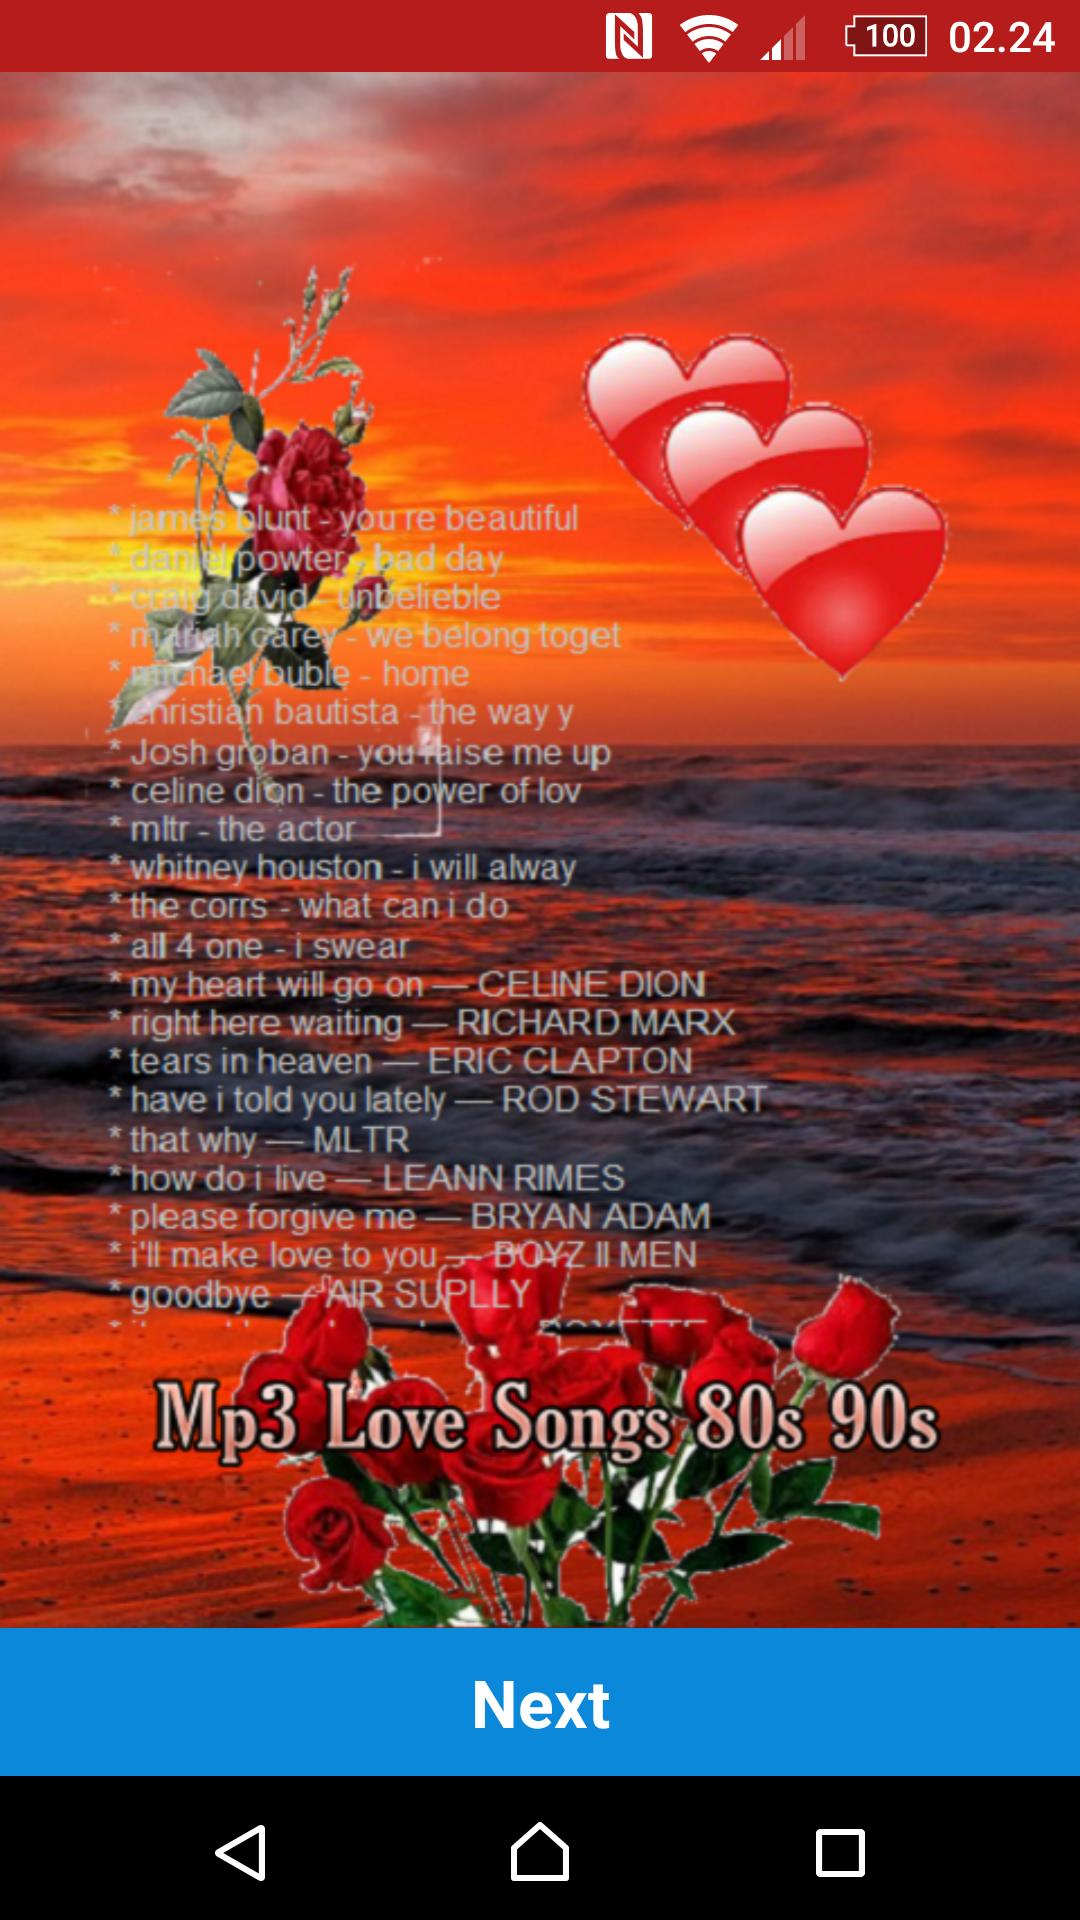 1980s tamil love songs mp3 free download